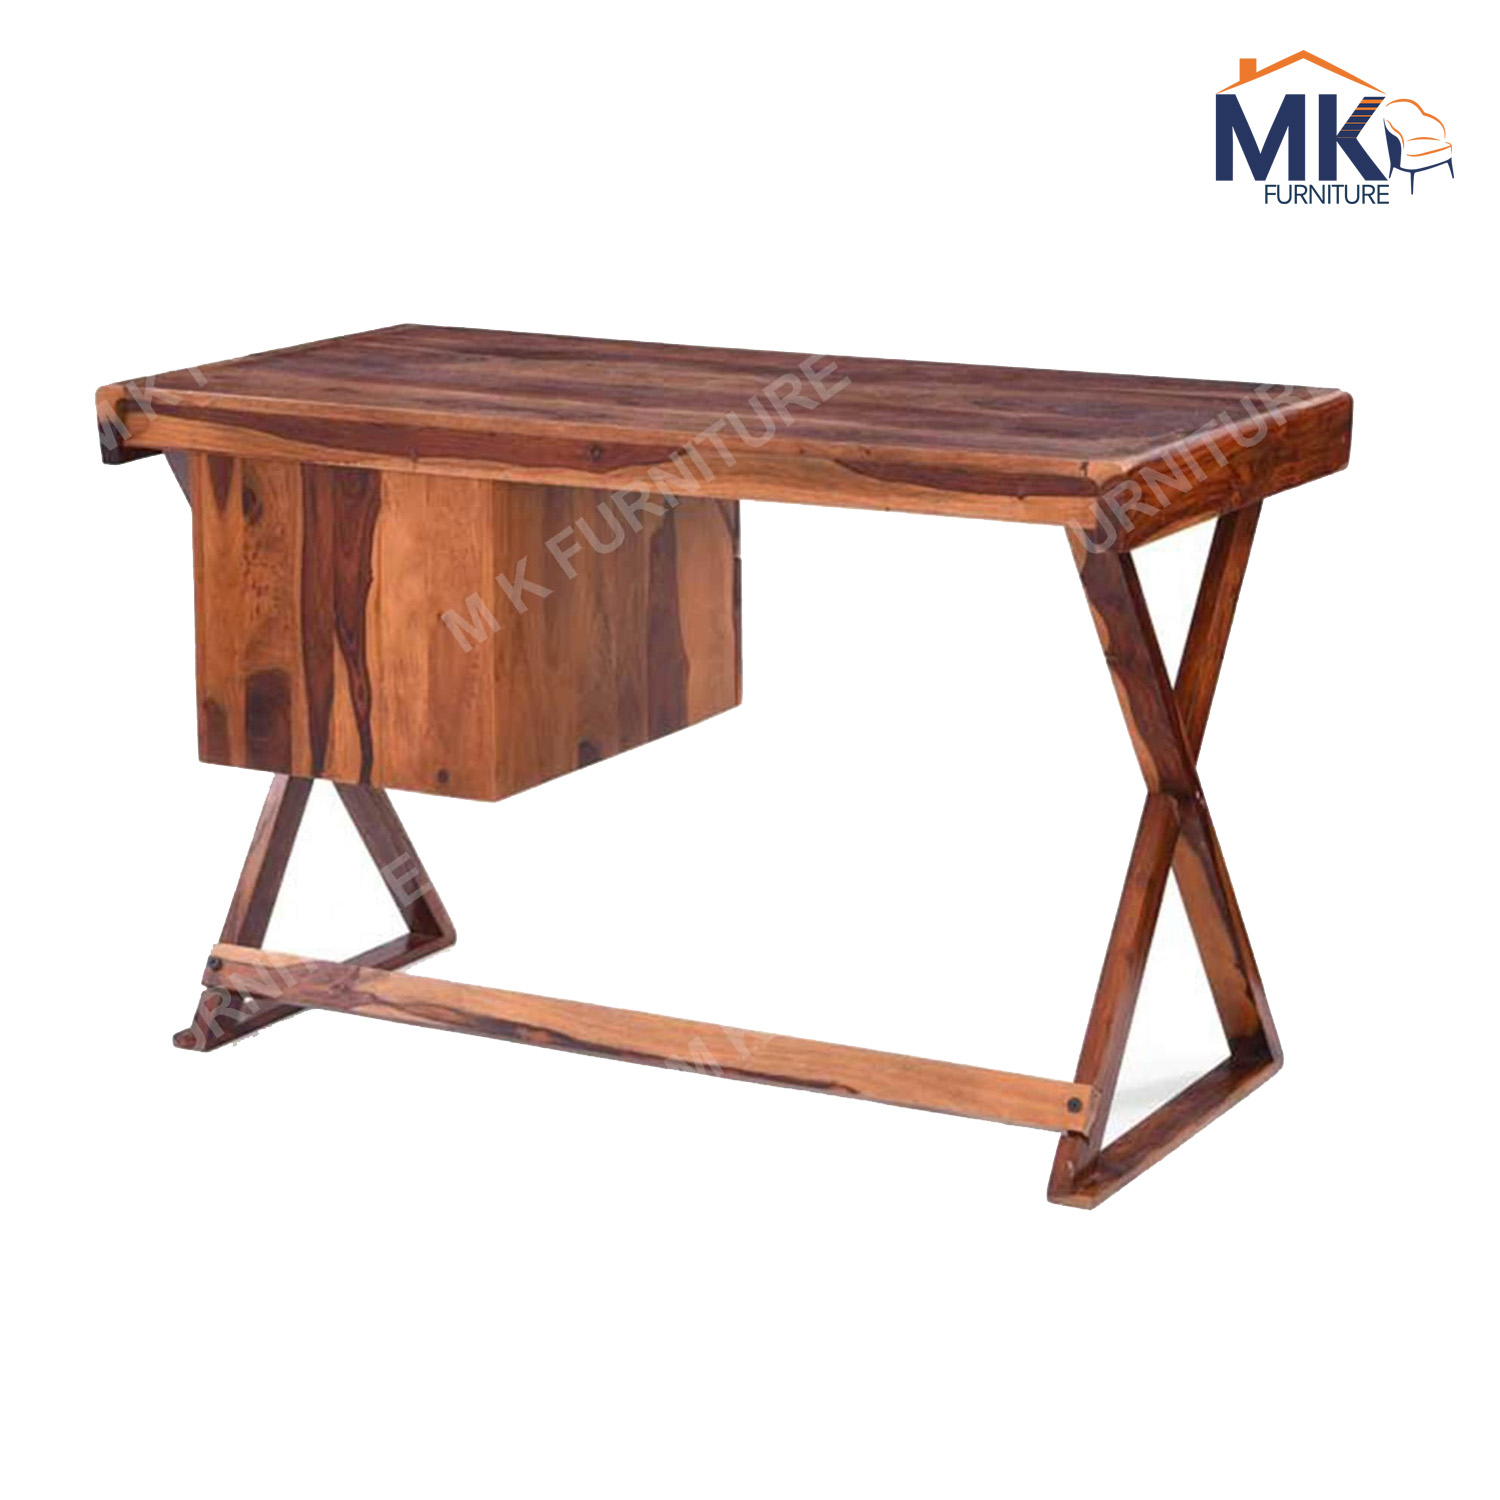 Solid Wood Study Table in Provincial Teak Finish